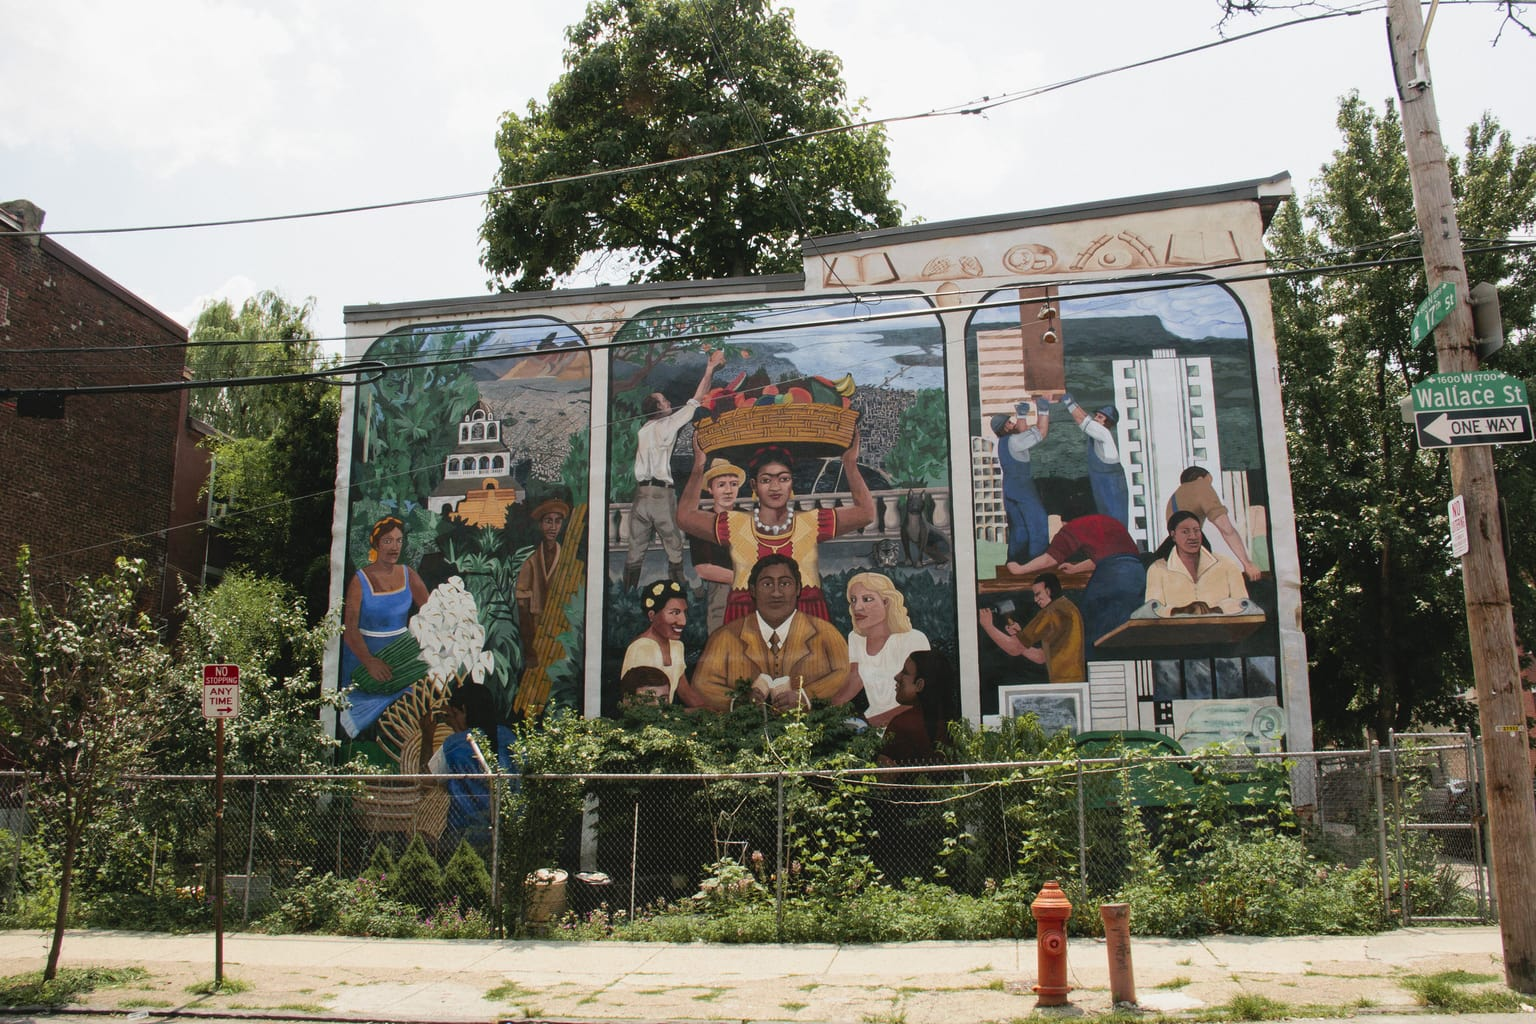 Murals of Philly